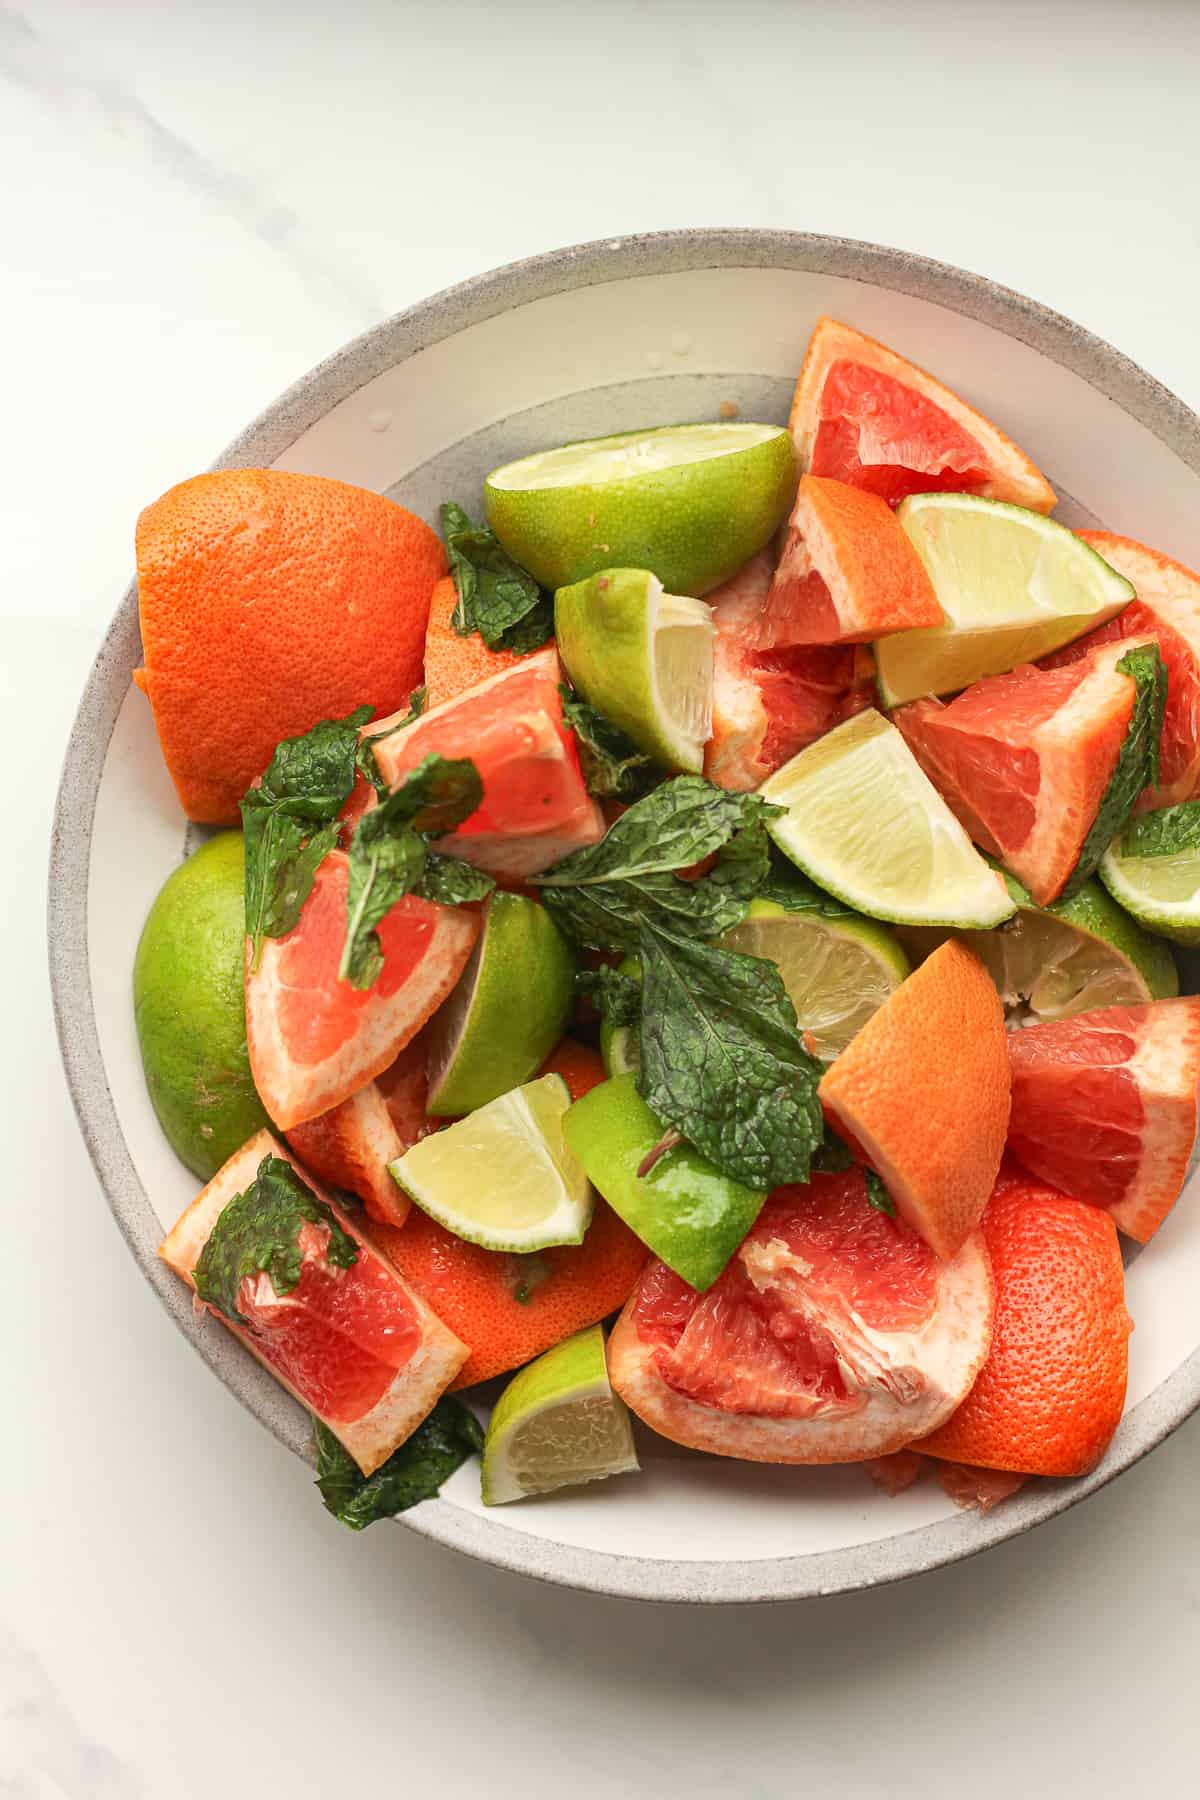 A bowl of chunks of grapefruit and limes.